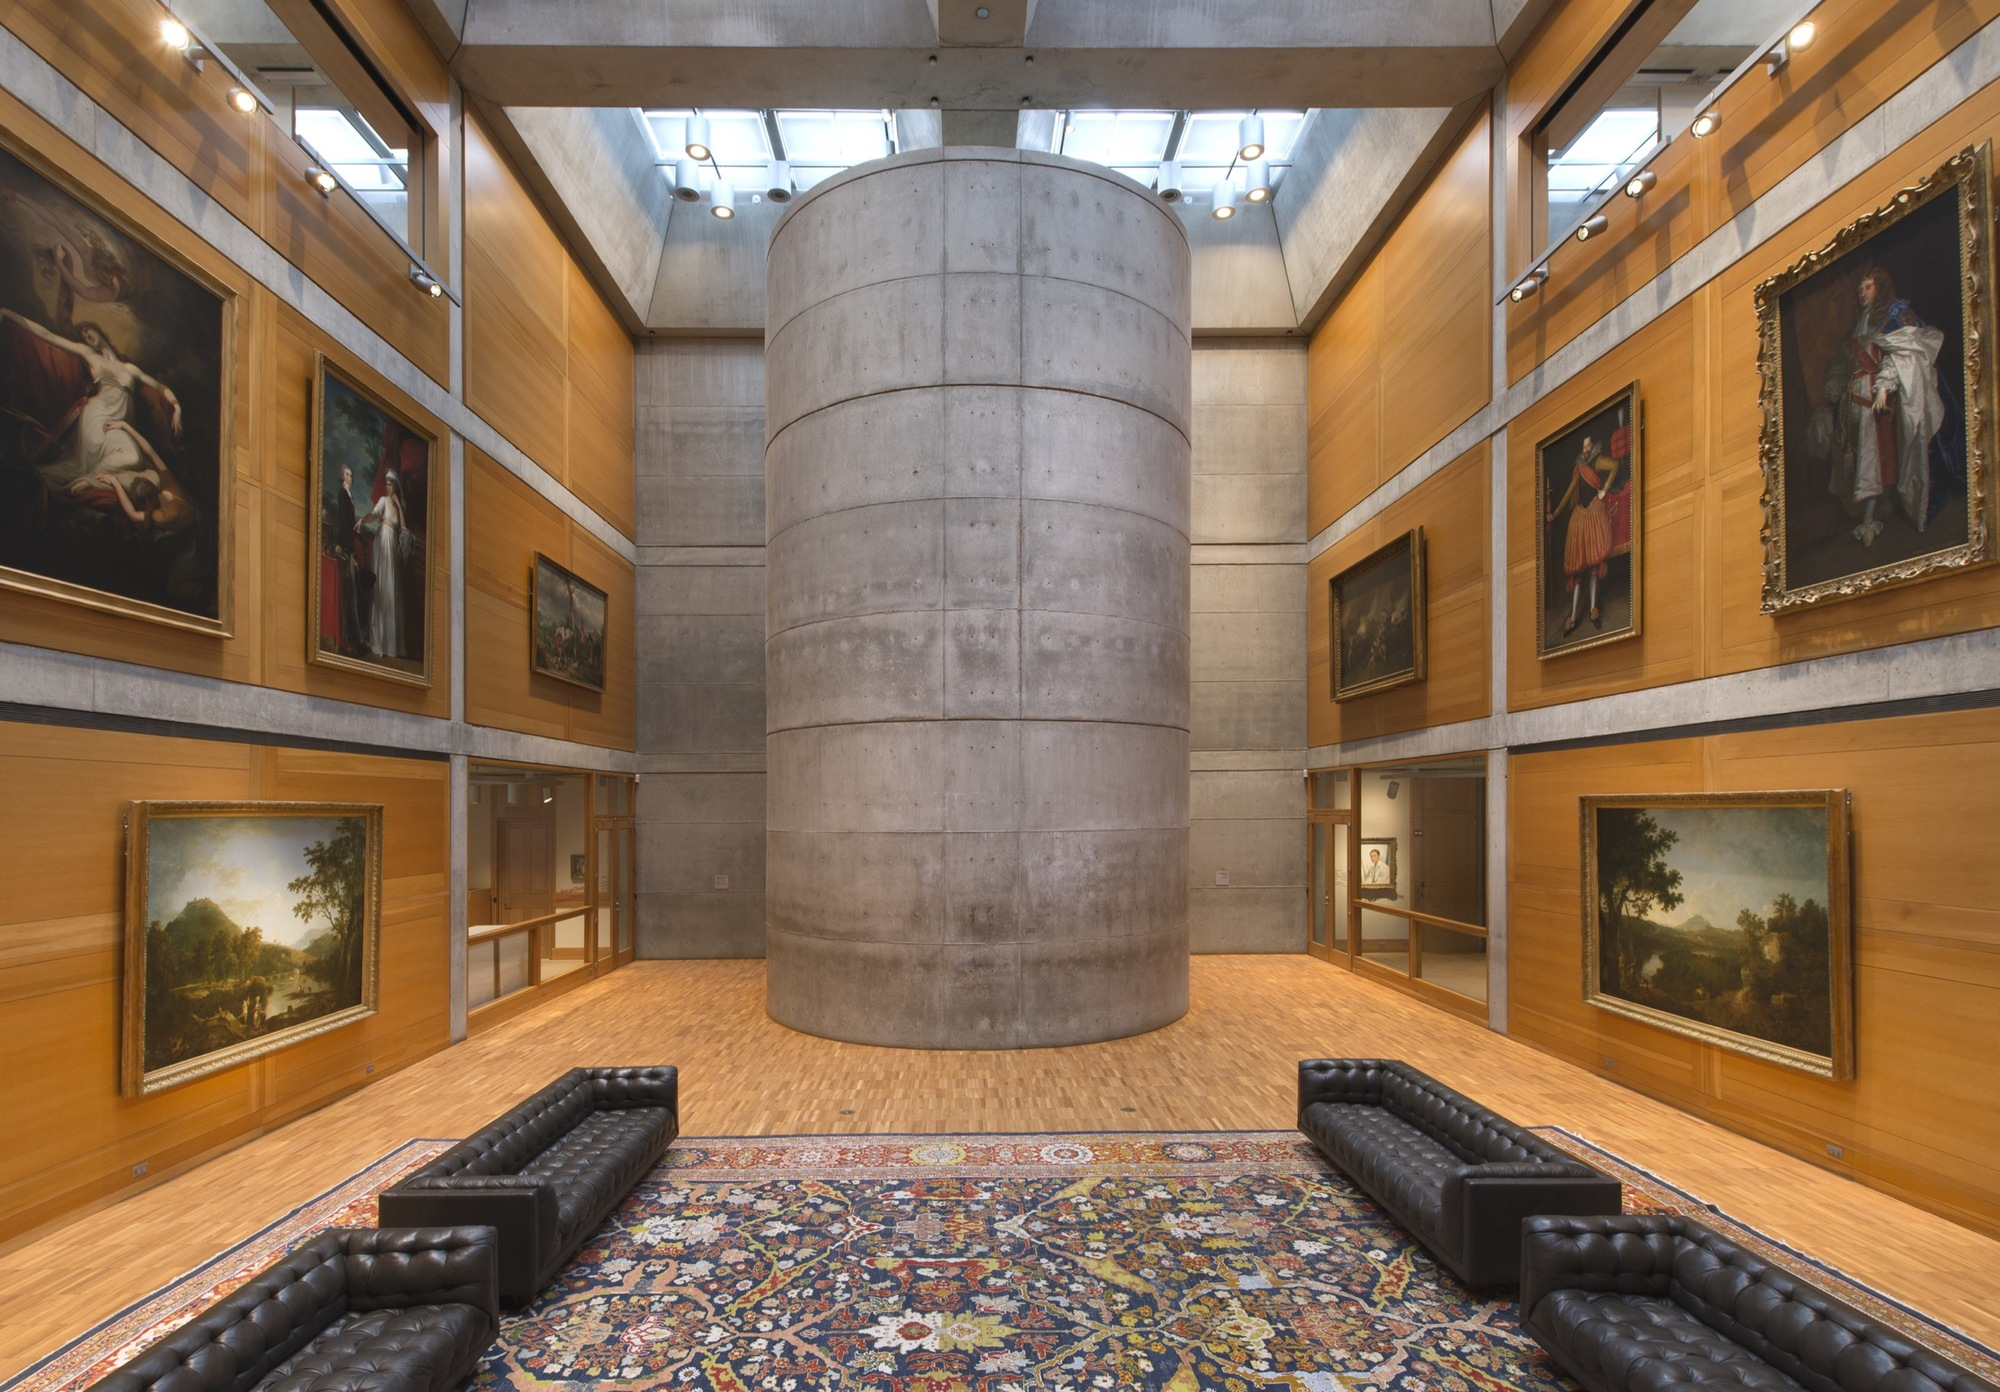 Louis kahn 39 s yale center for british art reopens after for Louis i khan